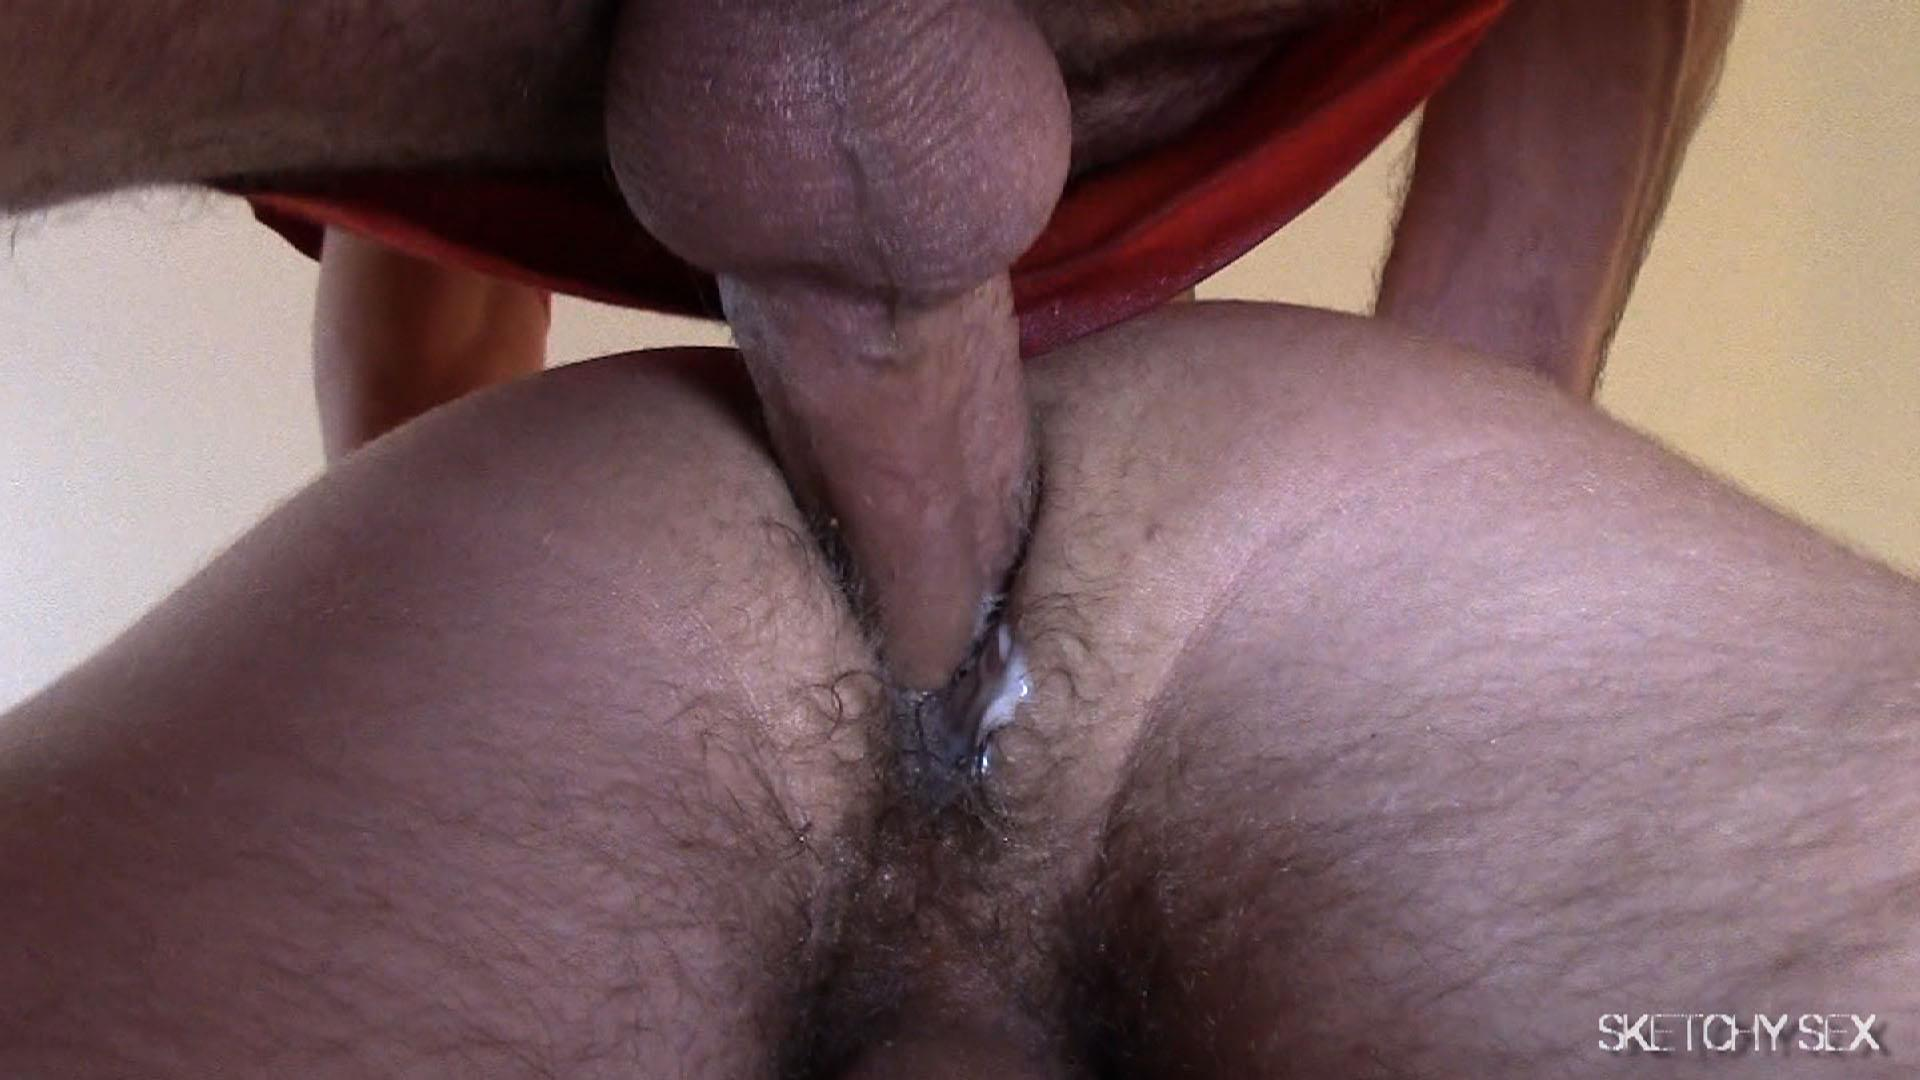 """Sketchy-Sex-Nate-Getting-Fucked-Bareback-By-A-10-Inch-Craigslist-Cock-Amateur-Gay-Porn-11 Taking A 10"""" Craigslist Cock Bareback While The Roommate Watches"""